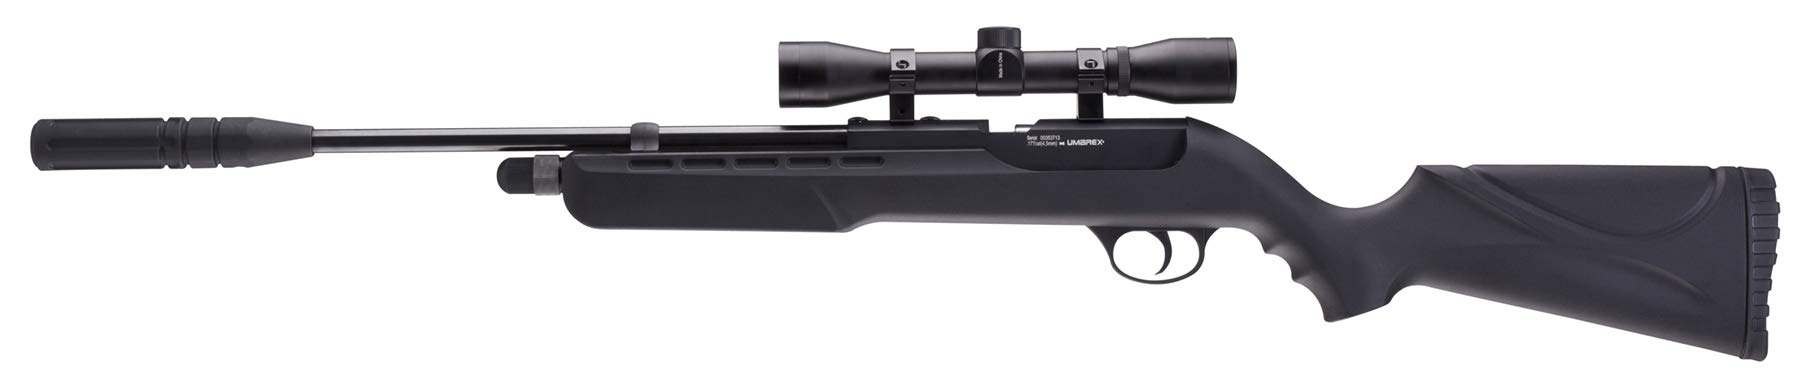 Umarex Fusion .177 Caliber Pellet Gun Air Rifle